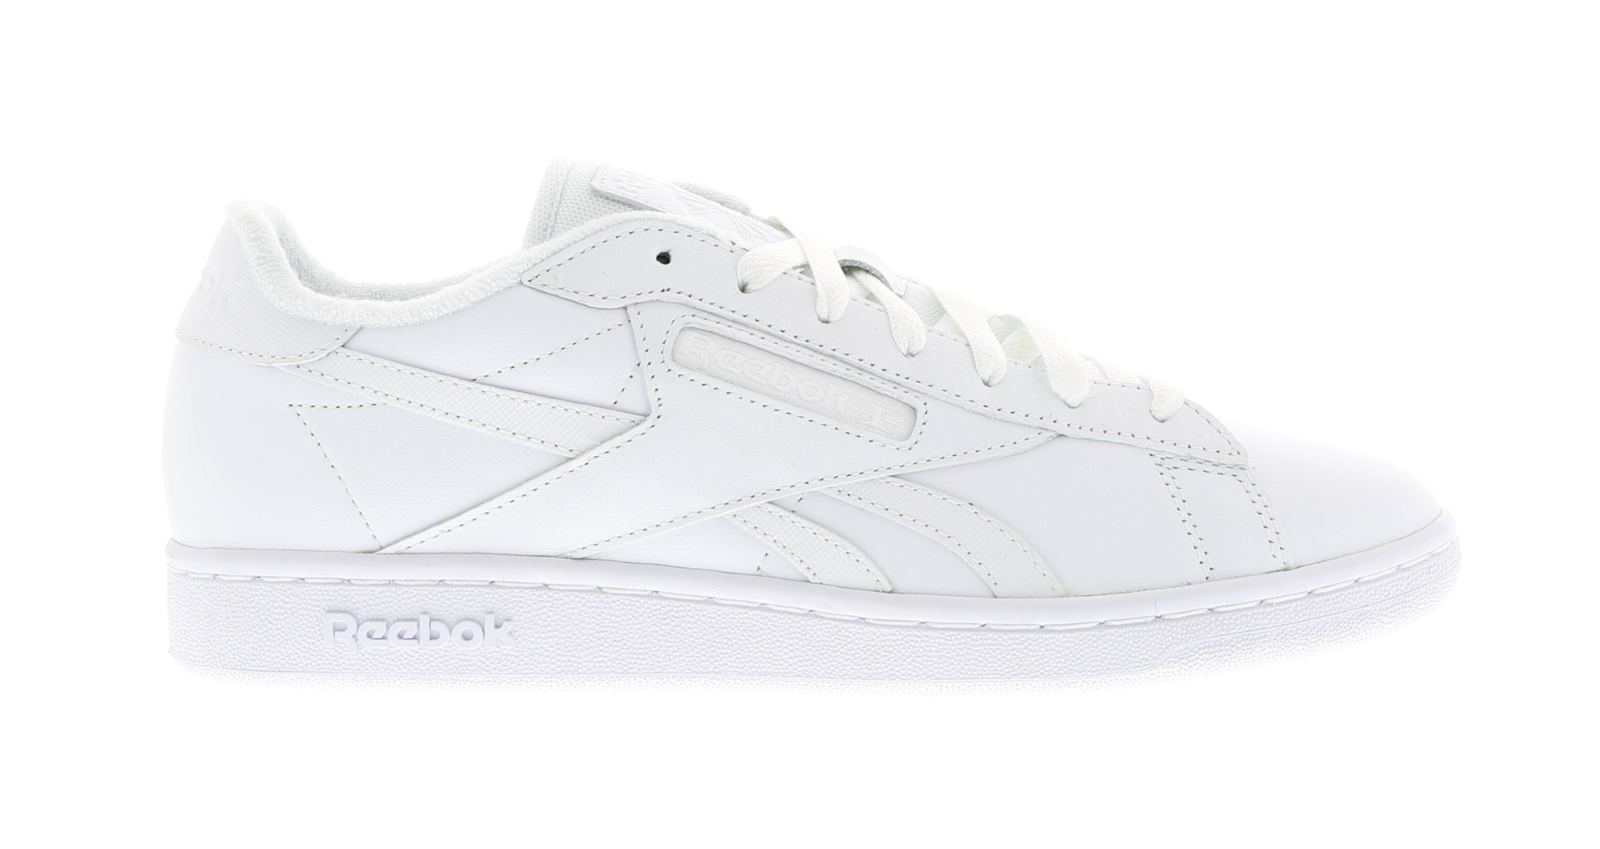 Neuf pour Hommes Reebok Npc UK Tx Chaussures Blanches BD1213